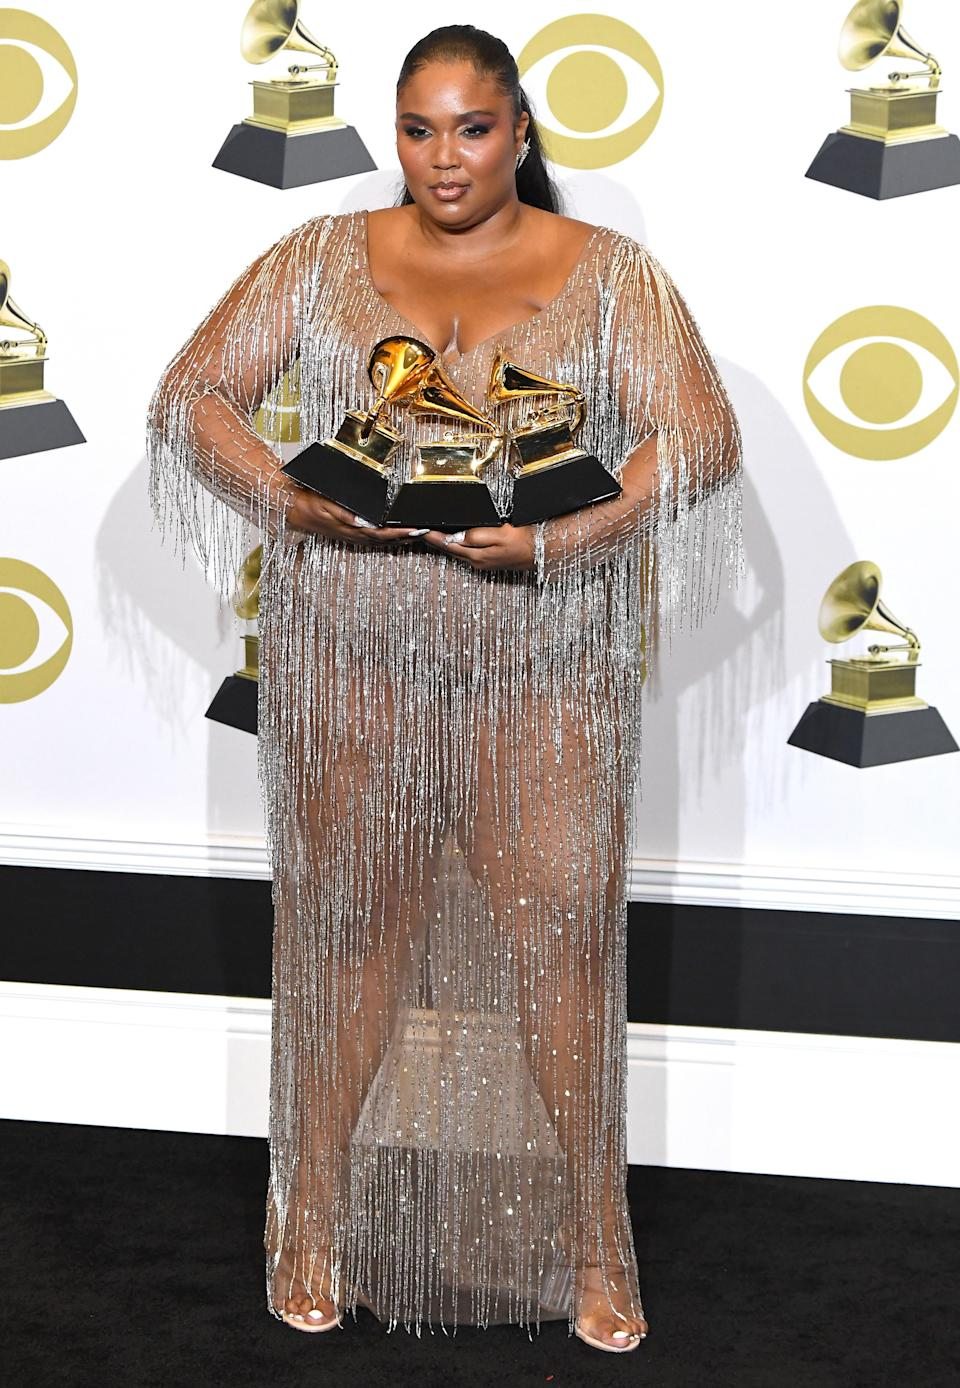 The last outfit change of the night was a custom Atelier Versace sheer dress. Her standout accessories just so happened to be three Grammys.